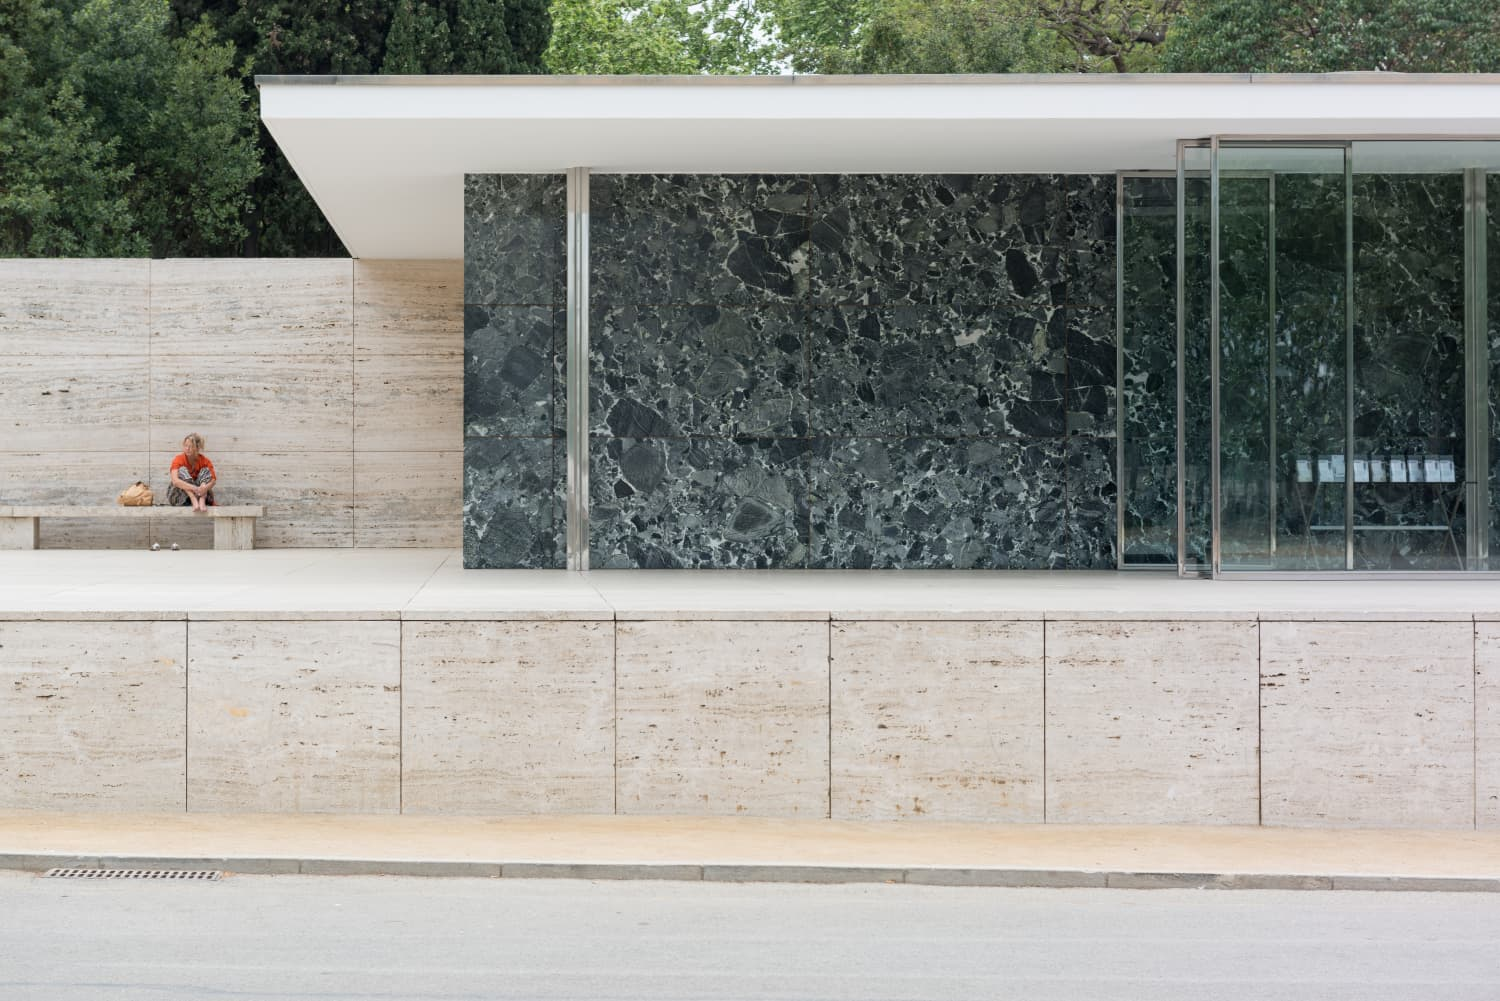 Mies Made Minimalist: The Barcelona Pavilion Gets a Temporary Facelift